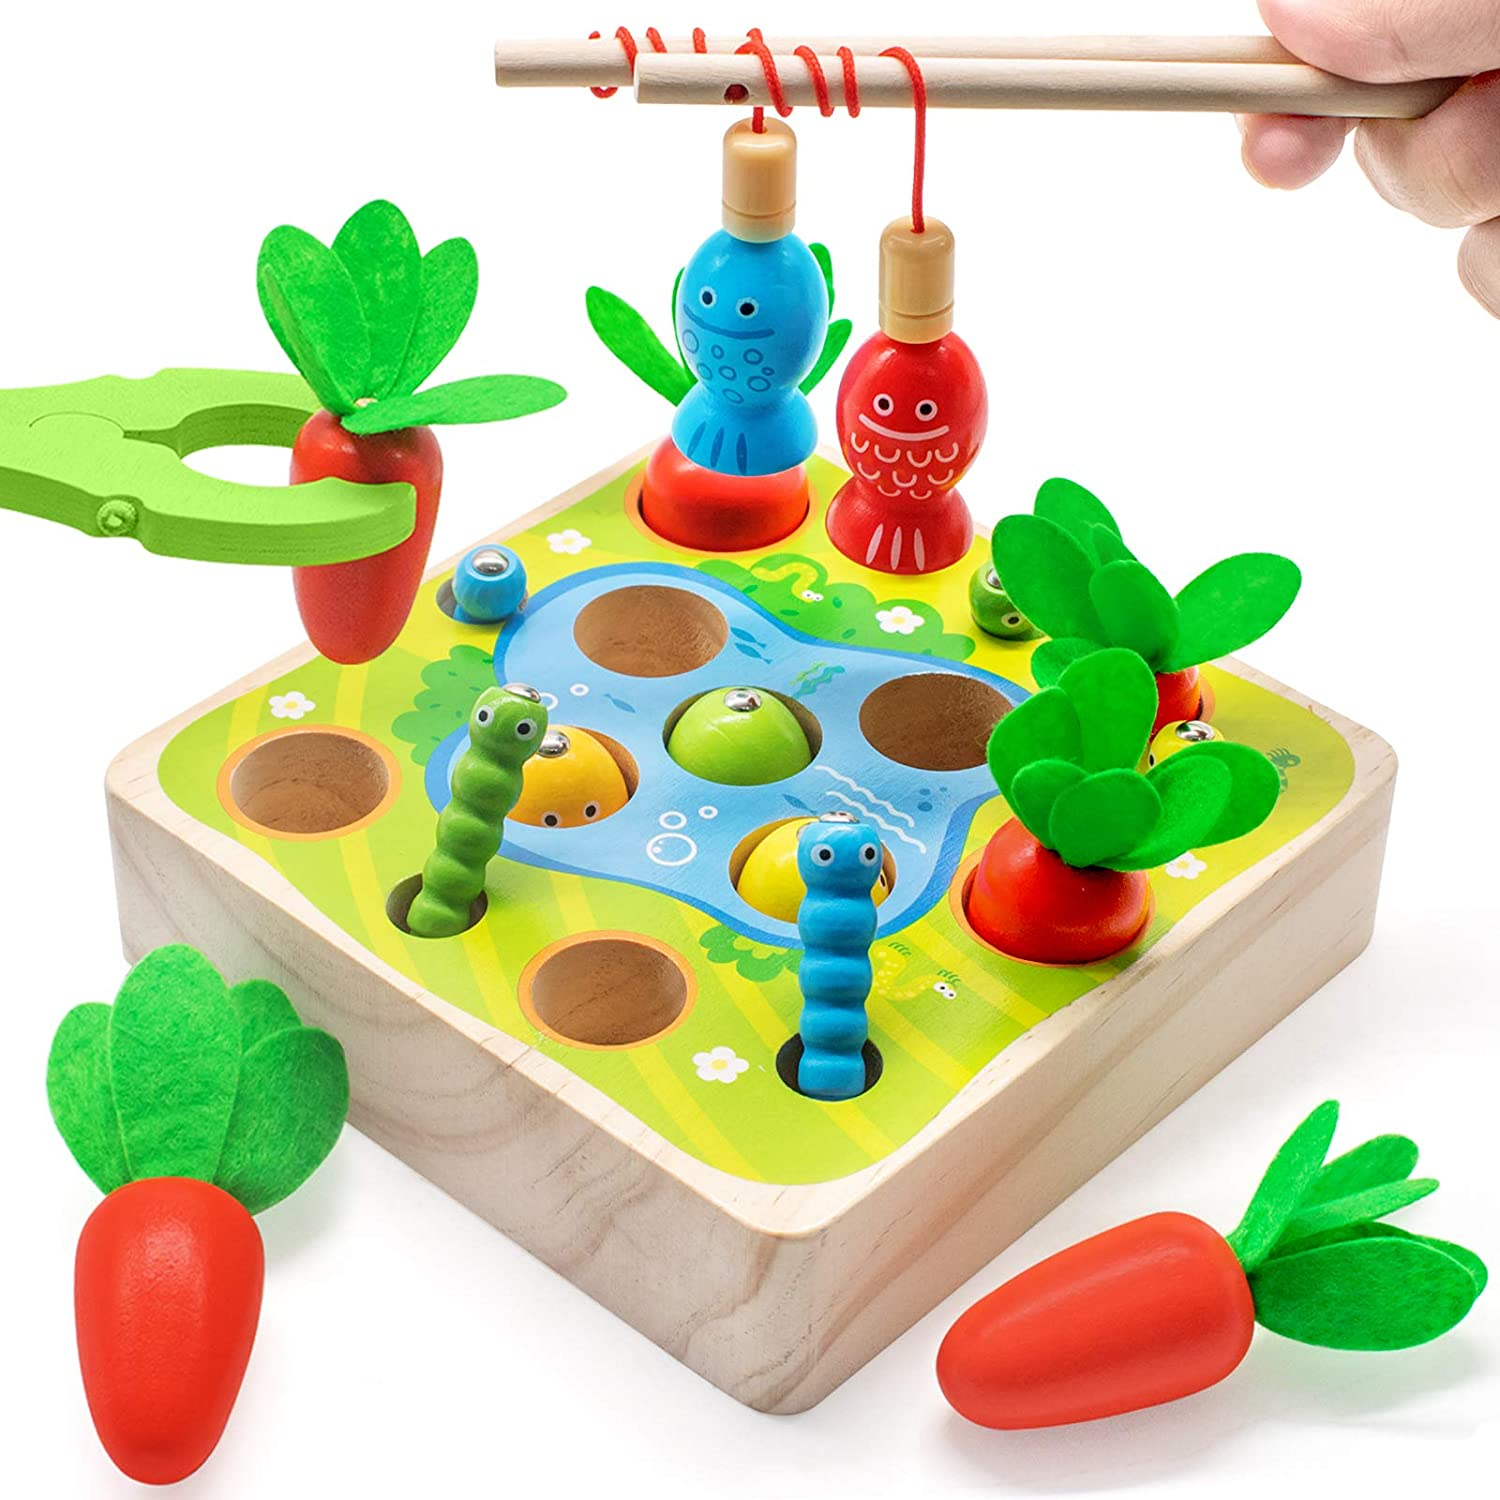 Wooden Montessori Toys for Toddler Insect Catching Toys Fishing Games 3 in 1 Carrot Harvest Game Fine Motor Skills Toy Sorting /& Counting Educational Puzzle Toy for Boys and Girls-Carrot Harvest